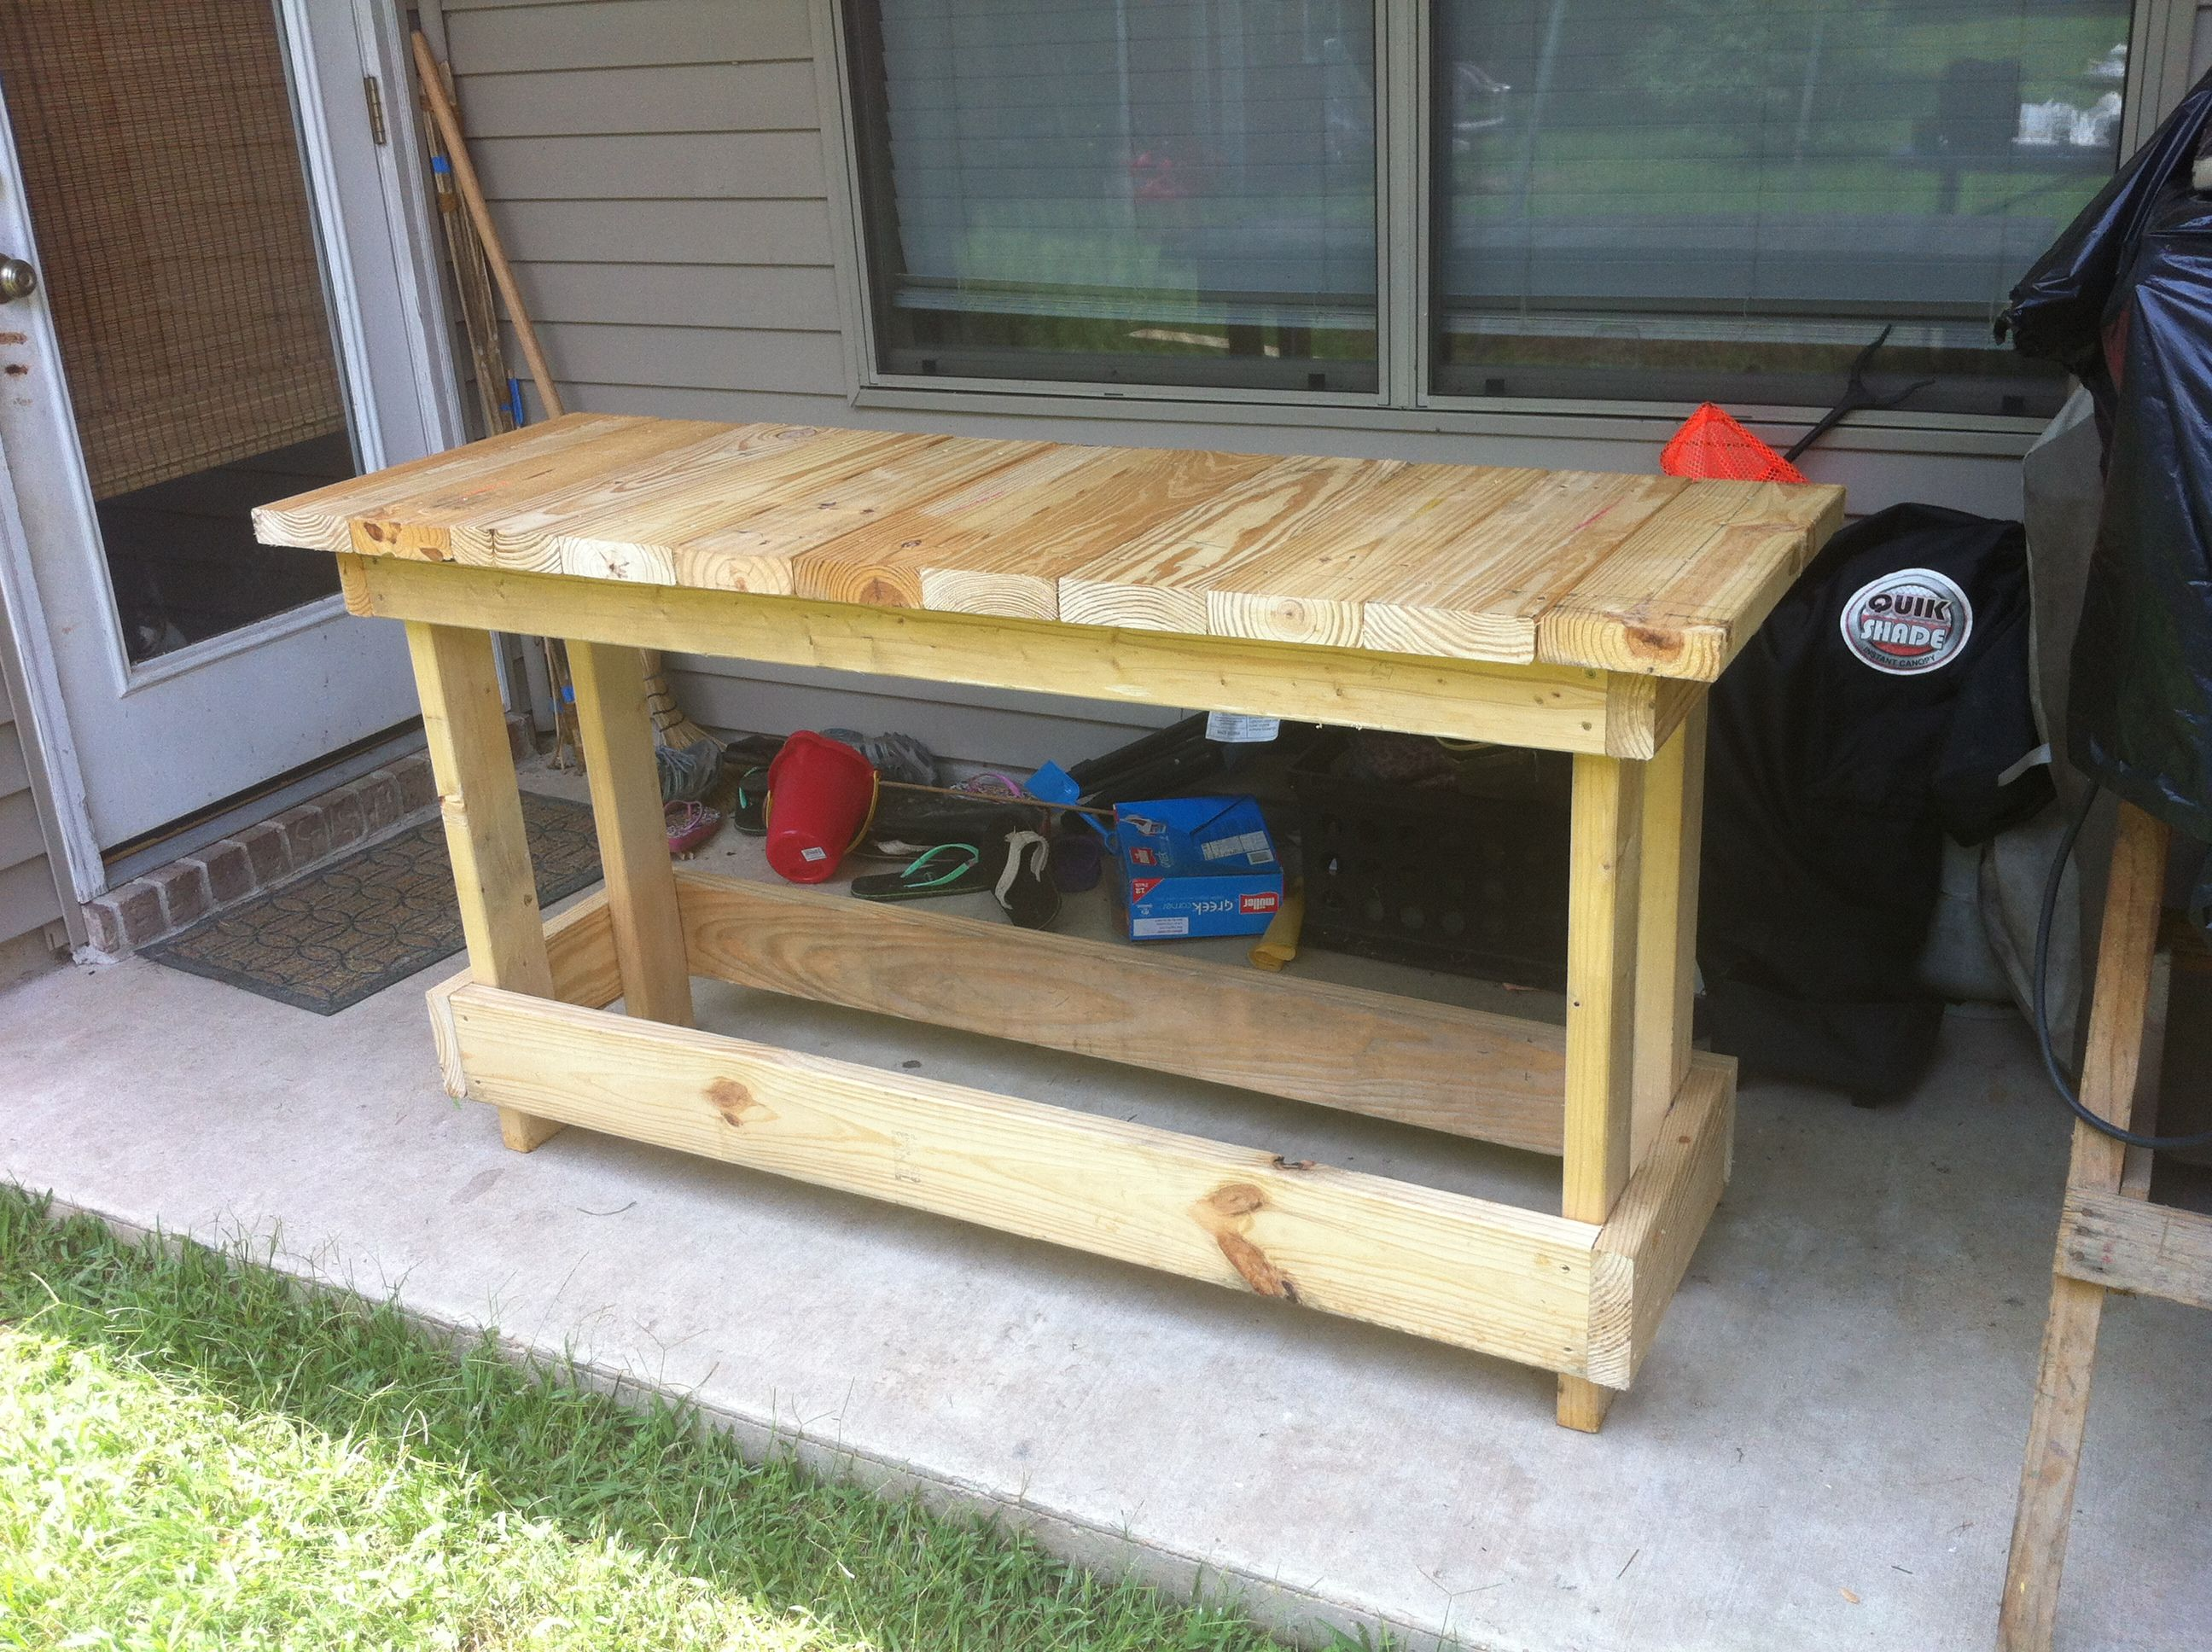 Garage Workbench Plans Myoutdoorplans Free Woodworking Plans And Projects Diy Shed Wooden Workbench Plans Diy Building A Workbench Garage Workbench Plans